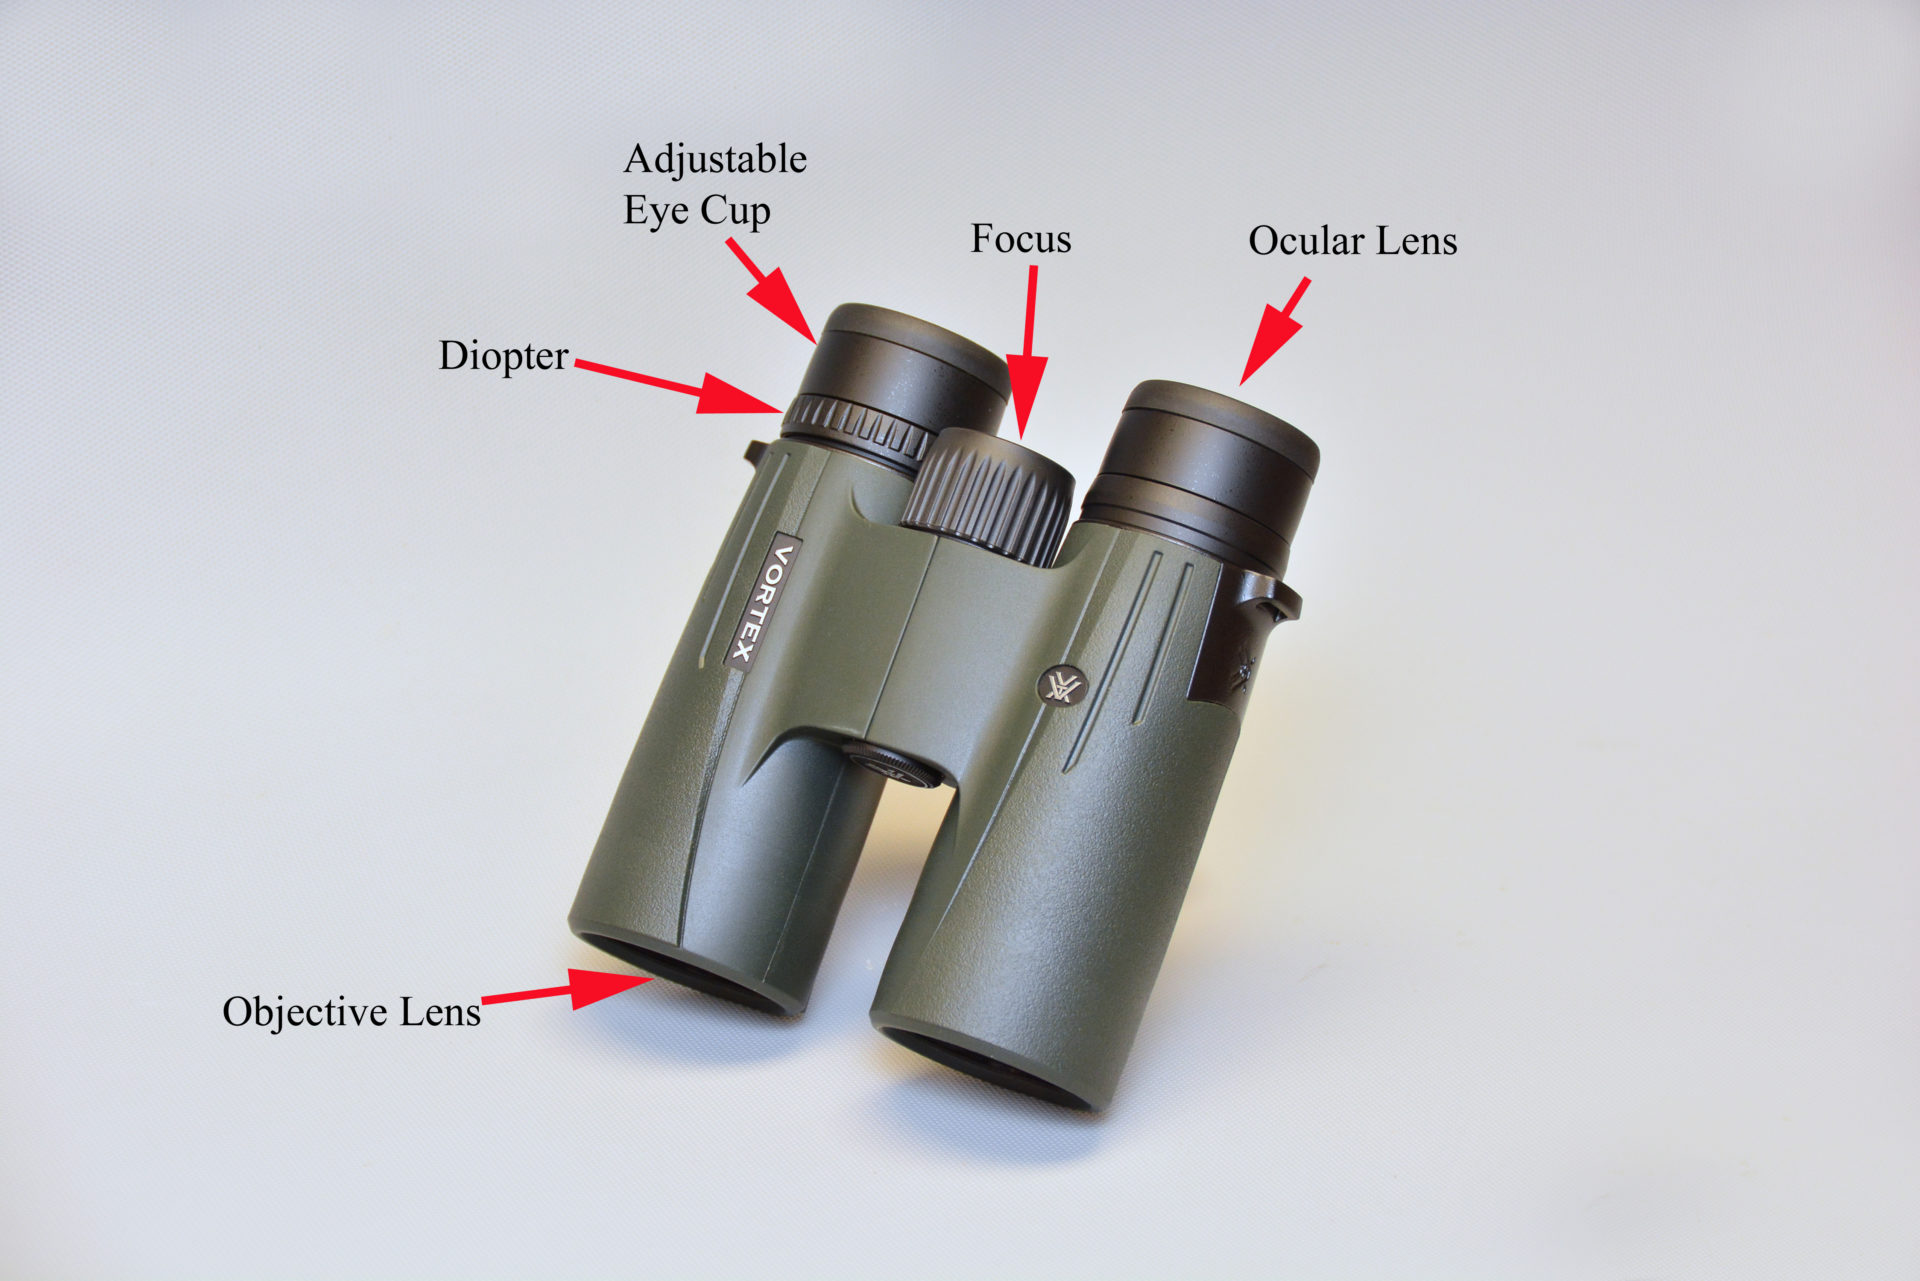 Understanding the major parts of a binocular is imperative to adjusting them properly.